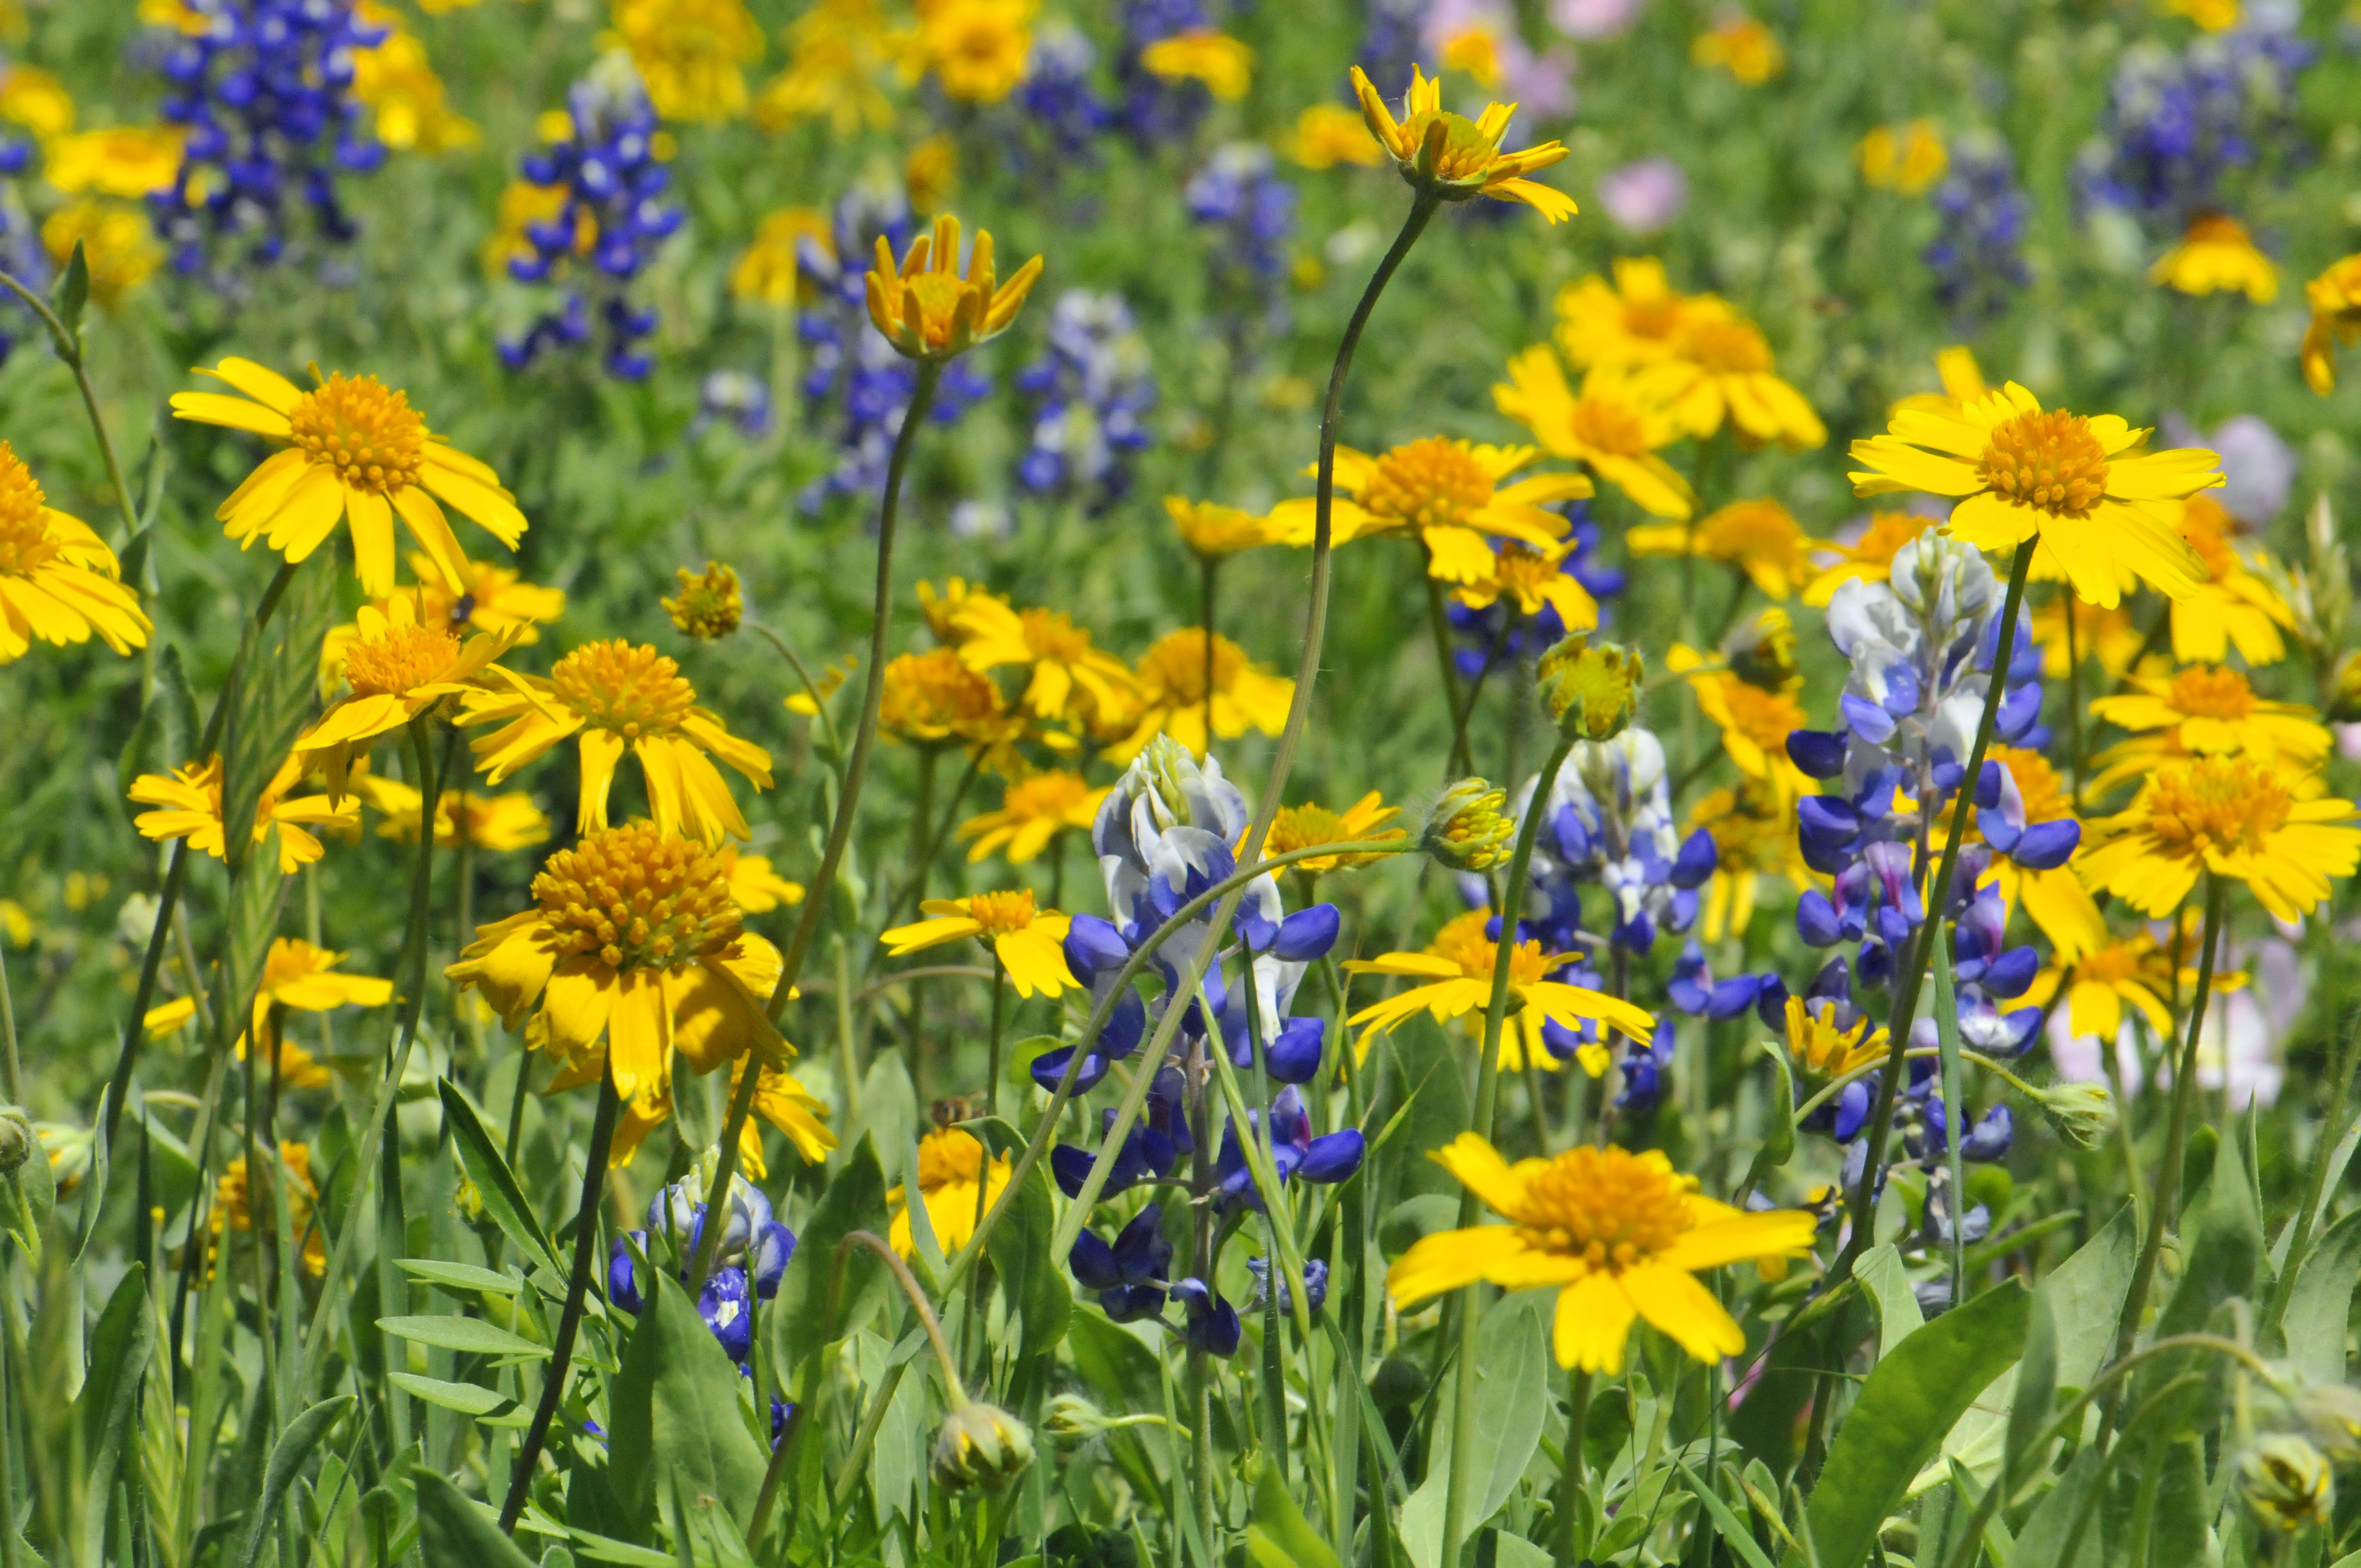 Full Hd Wildflowers Wallpaper Full Hd Pictures